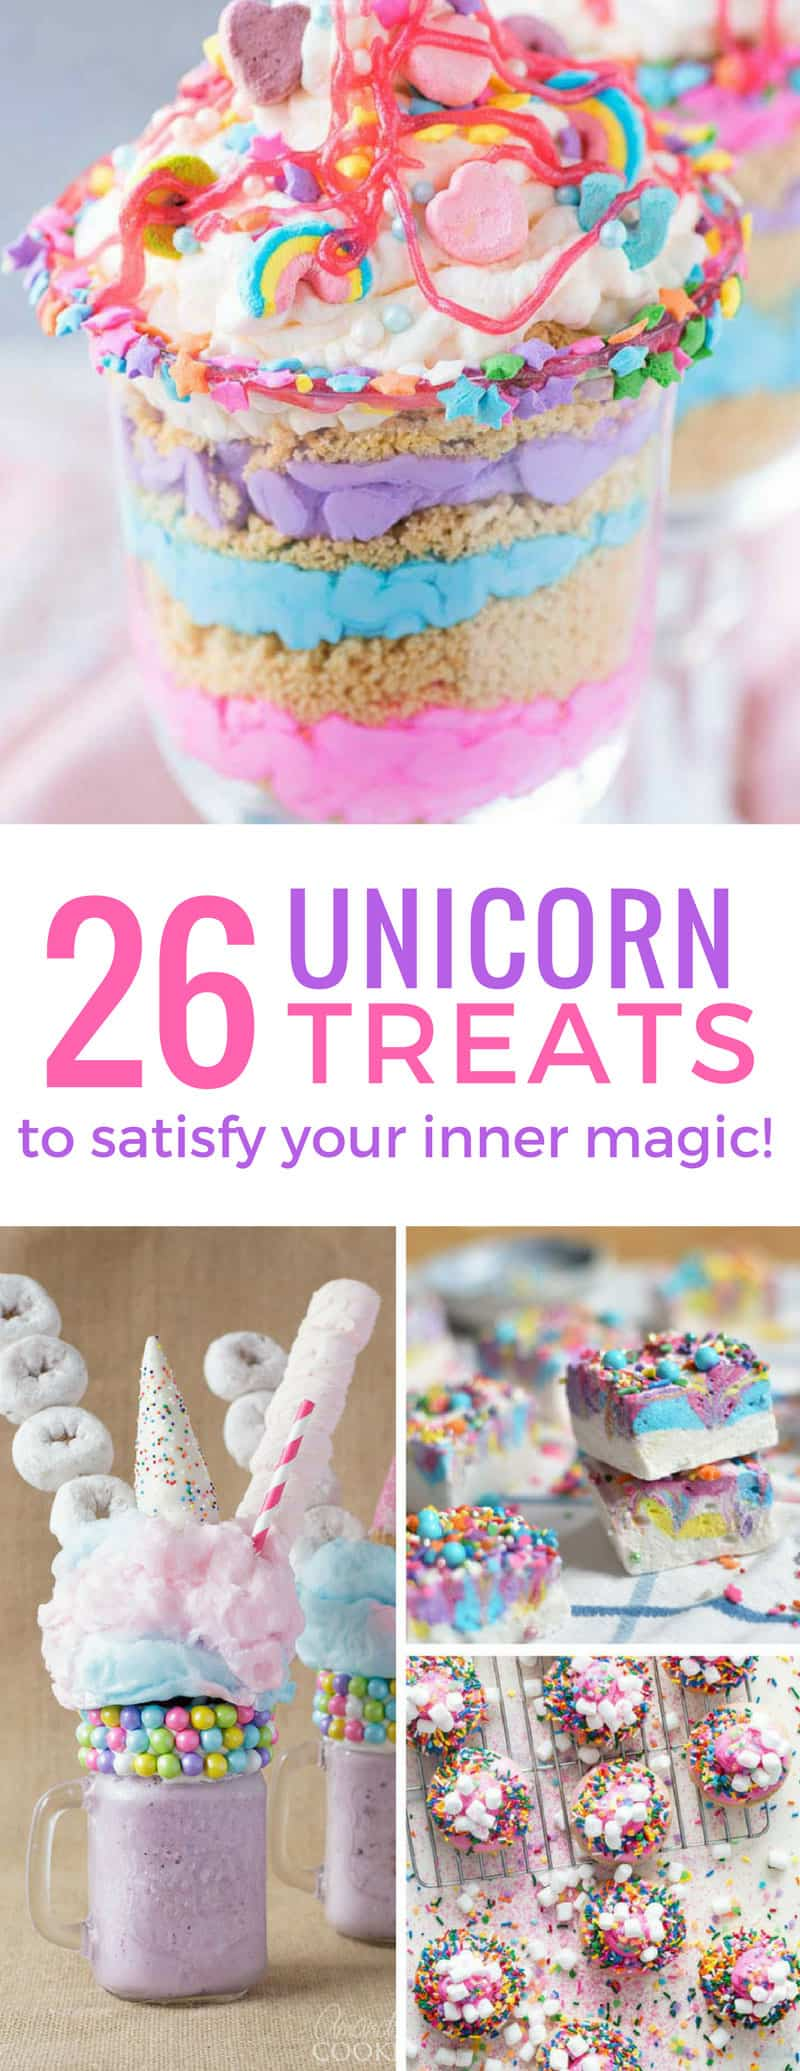 Loving these unicorn treats - perfect for playdates and parties for my unicorn crazed kiddos!